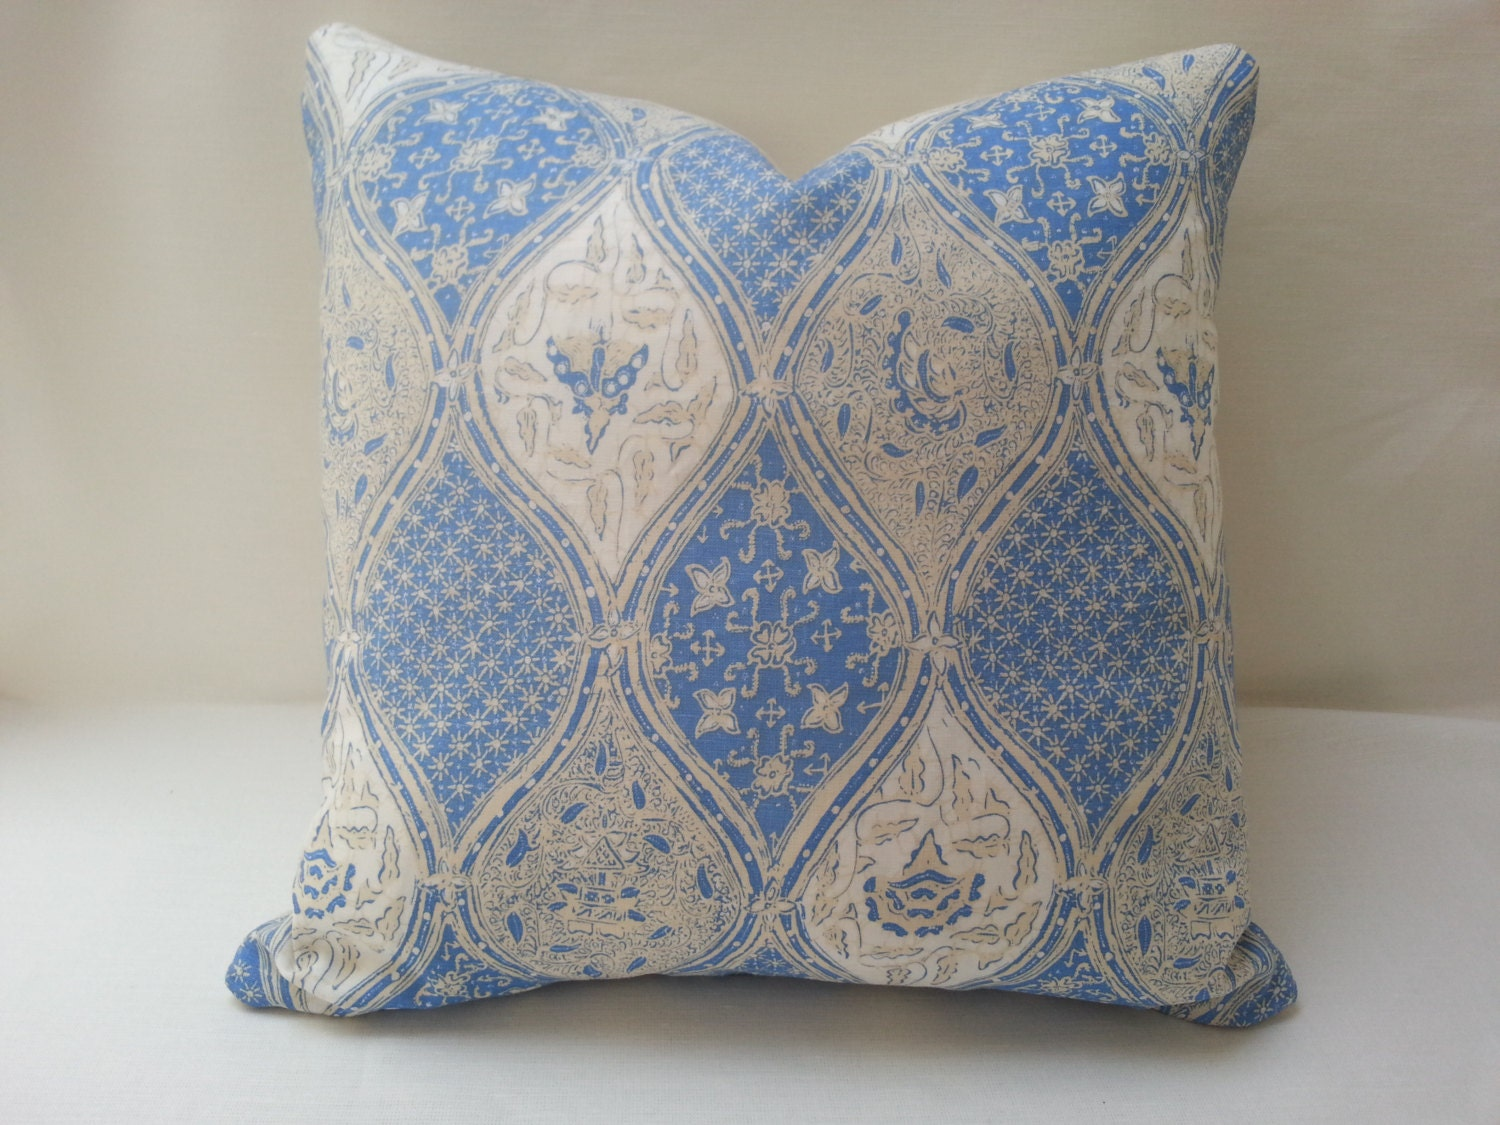 Queen Throw Pillows : 20 Quadrille Balinese Batik China Seas Linen Pillow by FLairworks